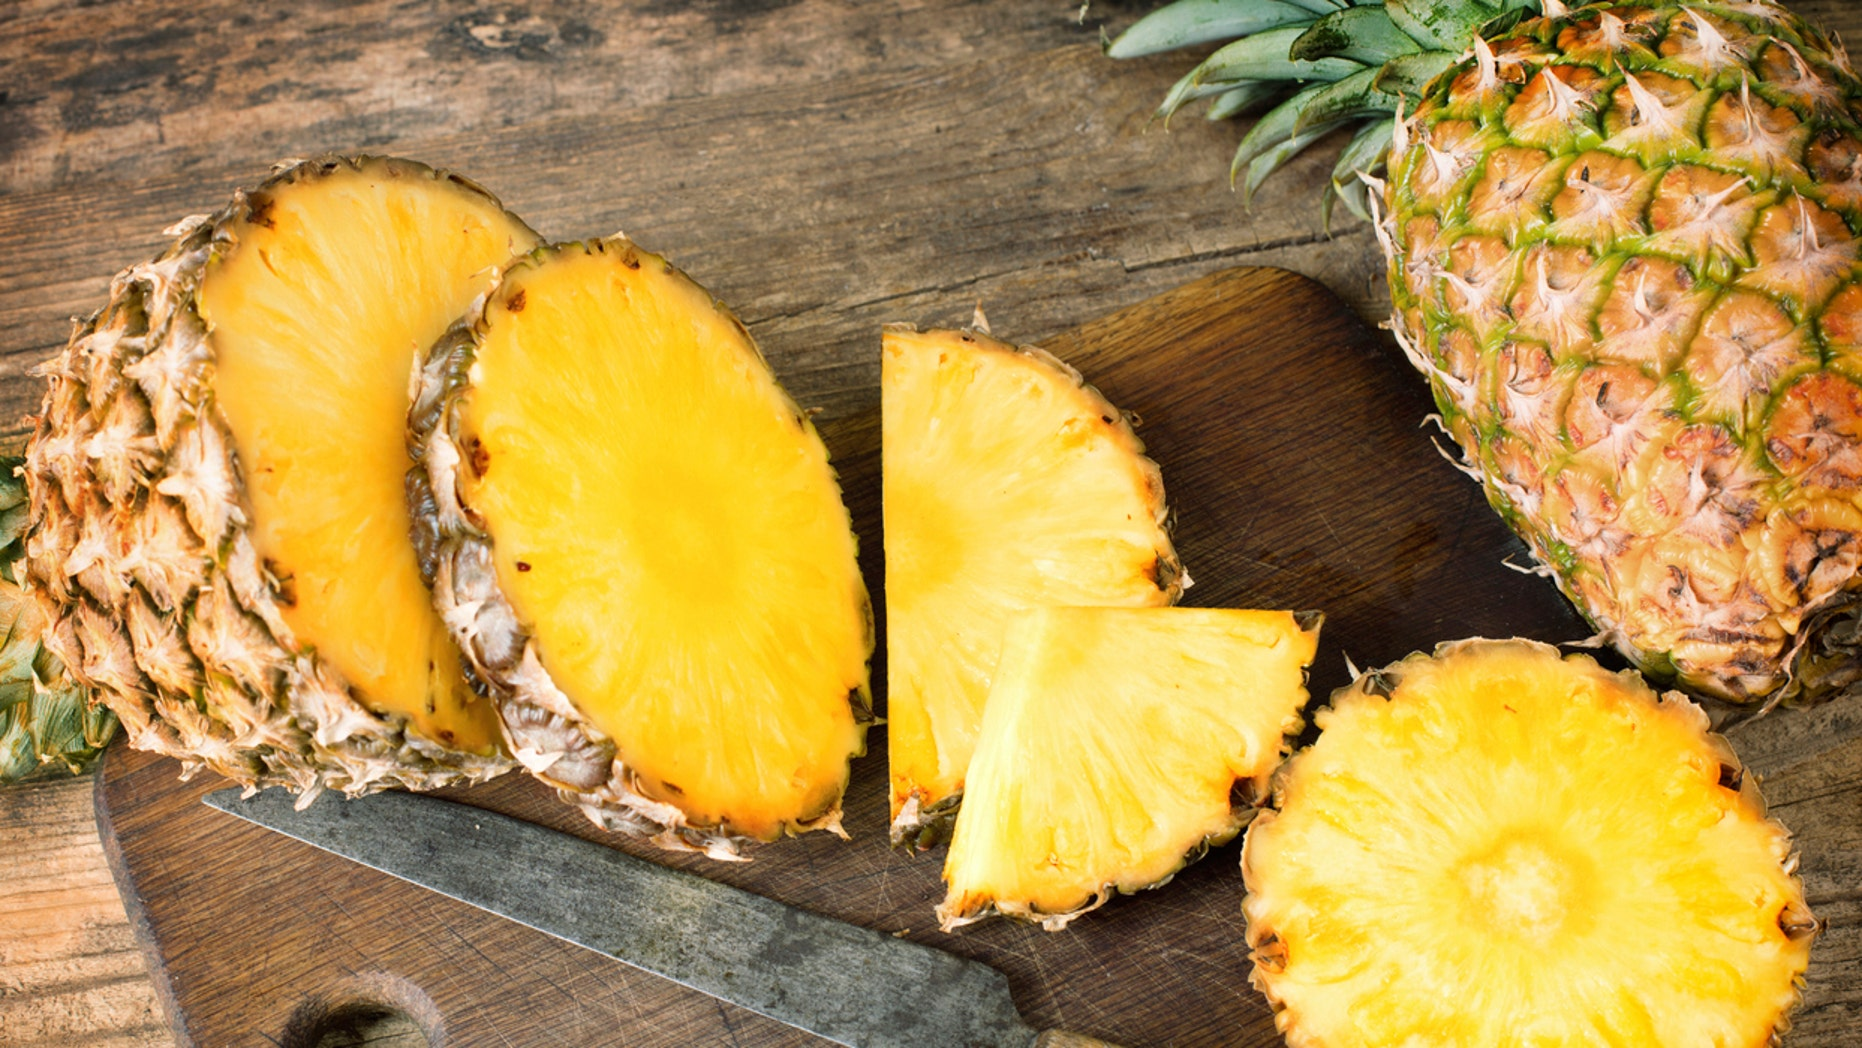 Apparently we've all been eating pineapple wrong.